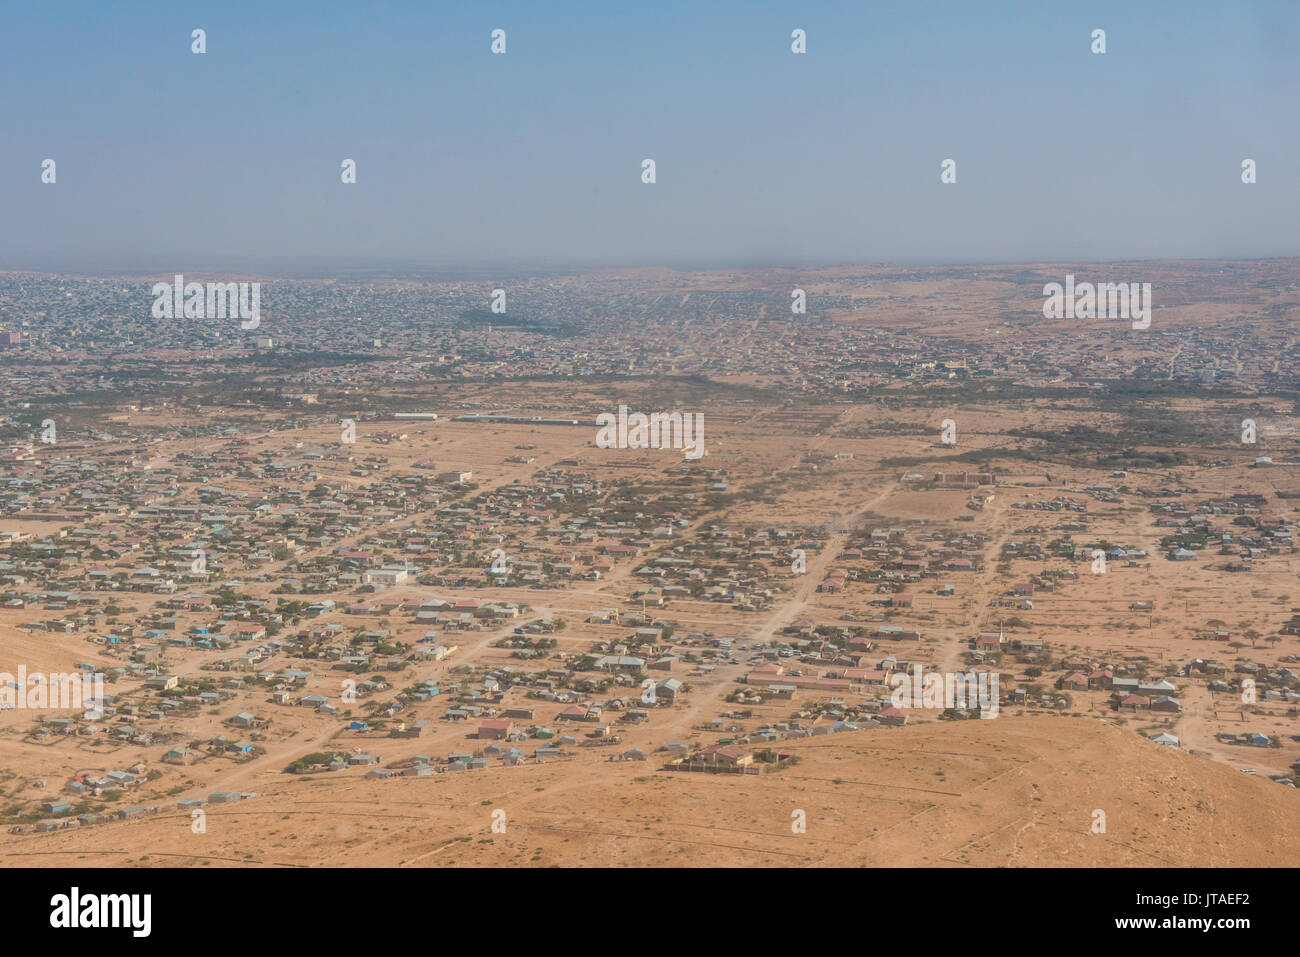 Aerials of Hargheisa, Somaliland, Somalia, Africa - Stock Image